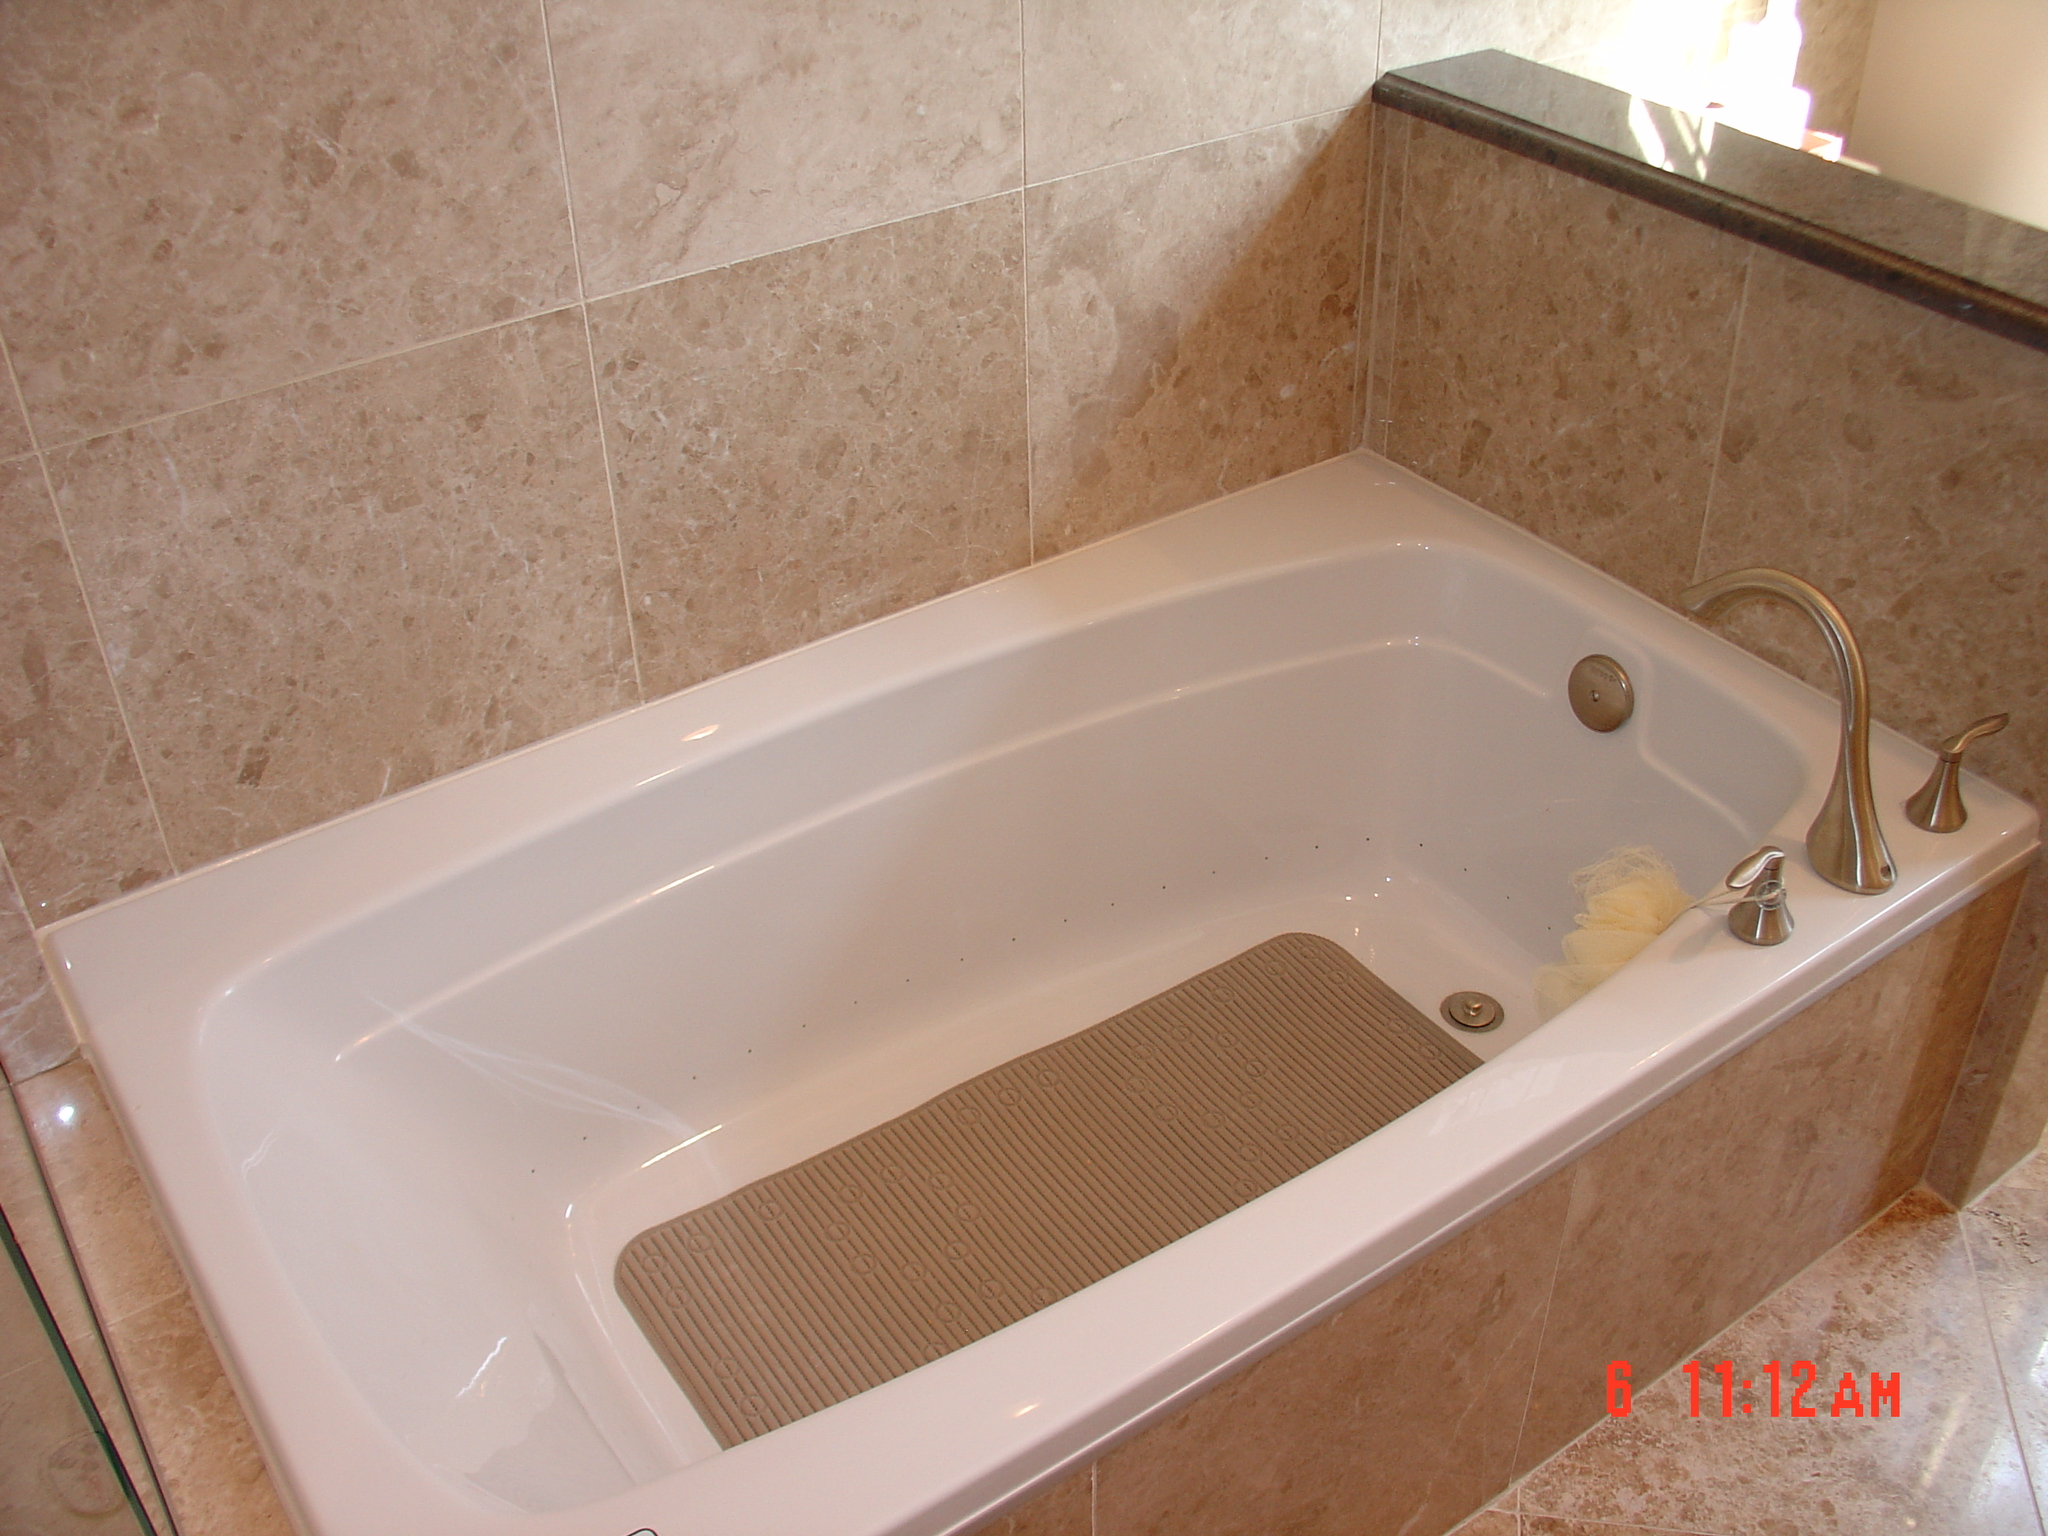 Bath remodeling bathtub reglazing bathtub liners st for Bathtub replacement liner